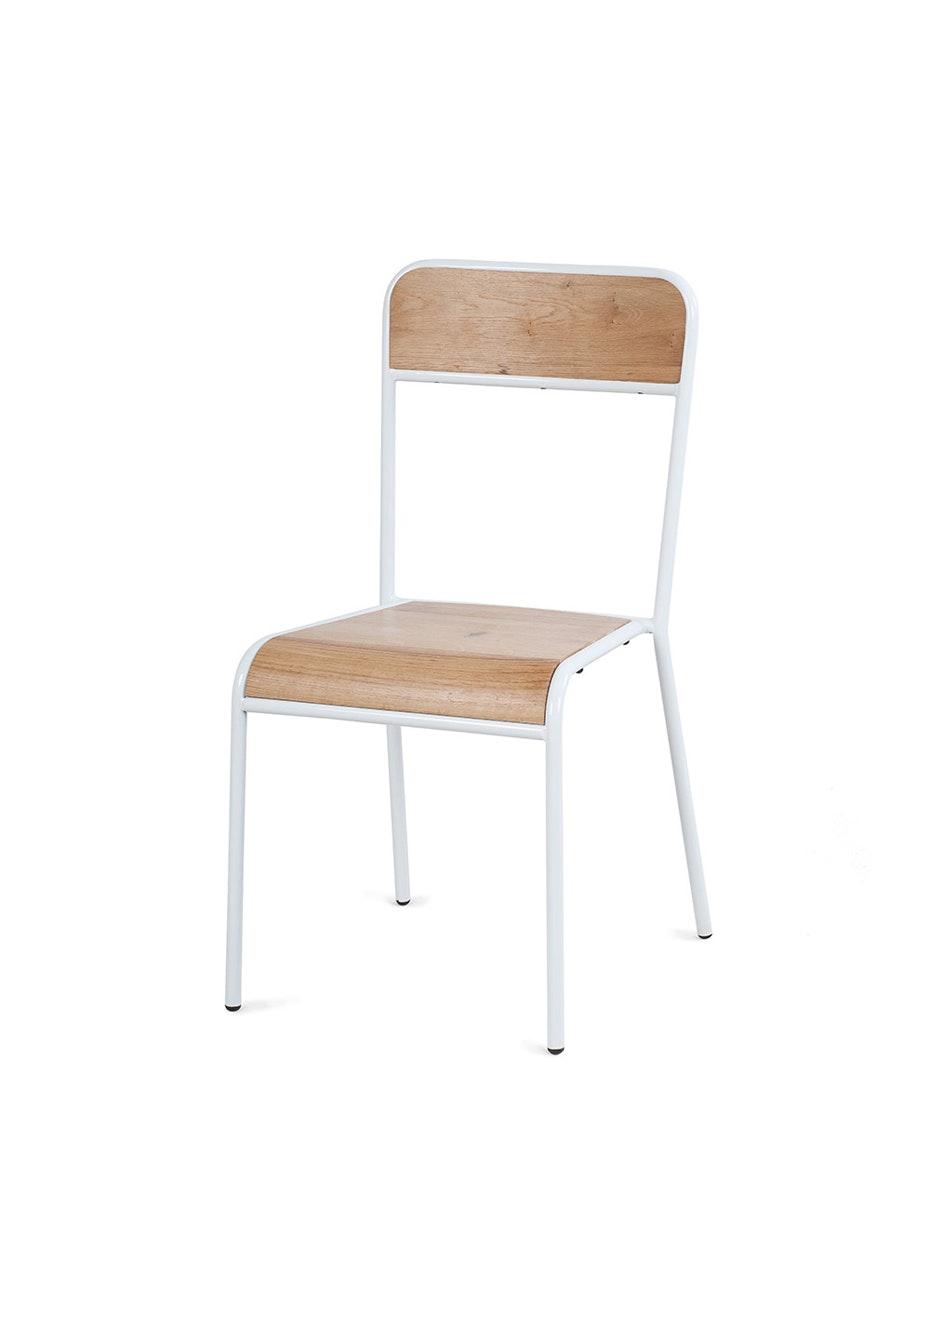 Furniture By Design - Skhol Chair - White